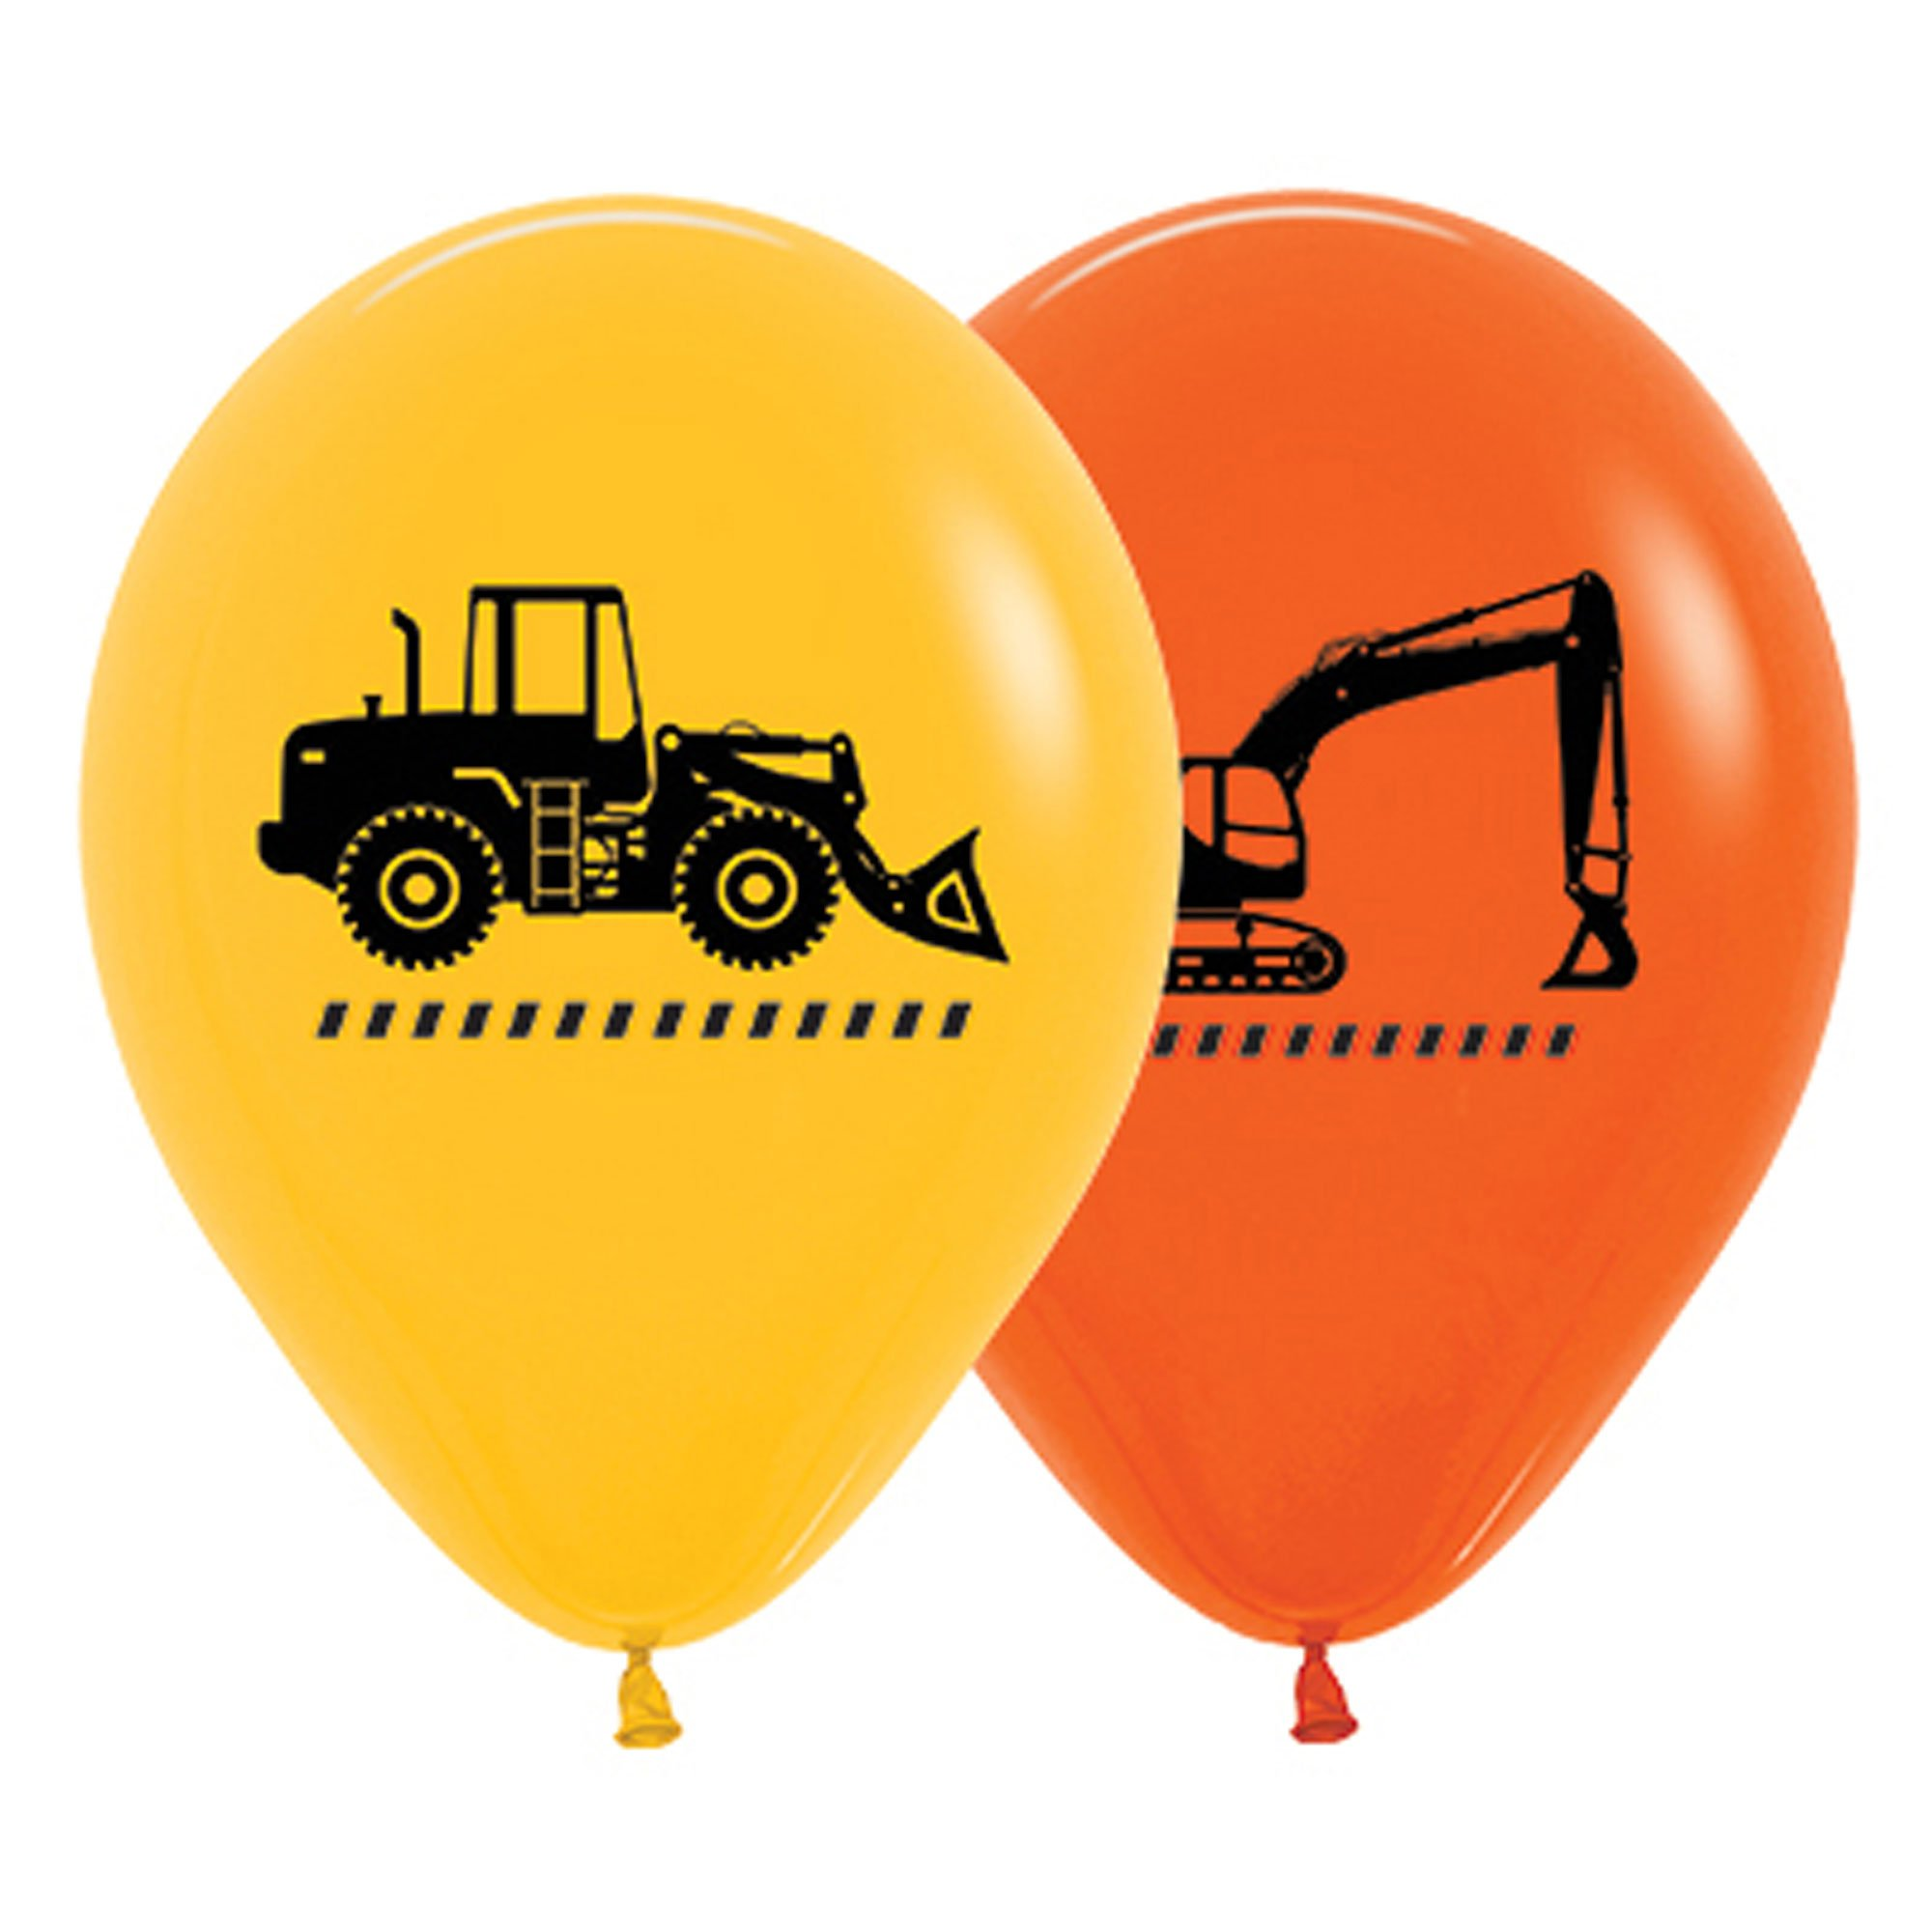 Sempertex 30cm Construction Trucks Fashion Yellow & Orange Latex Balloons, 25PK